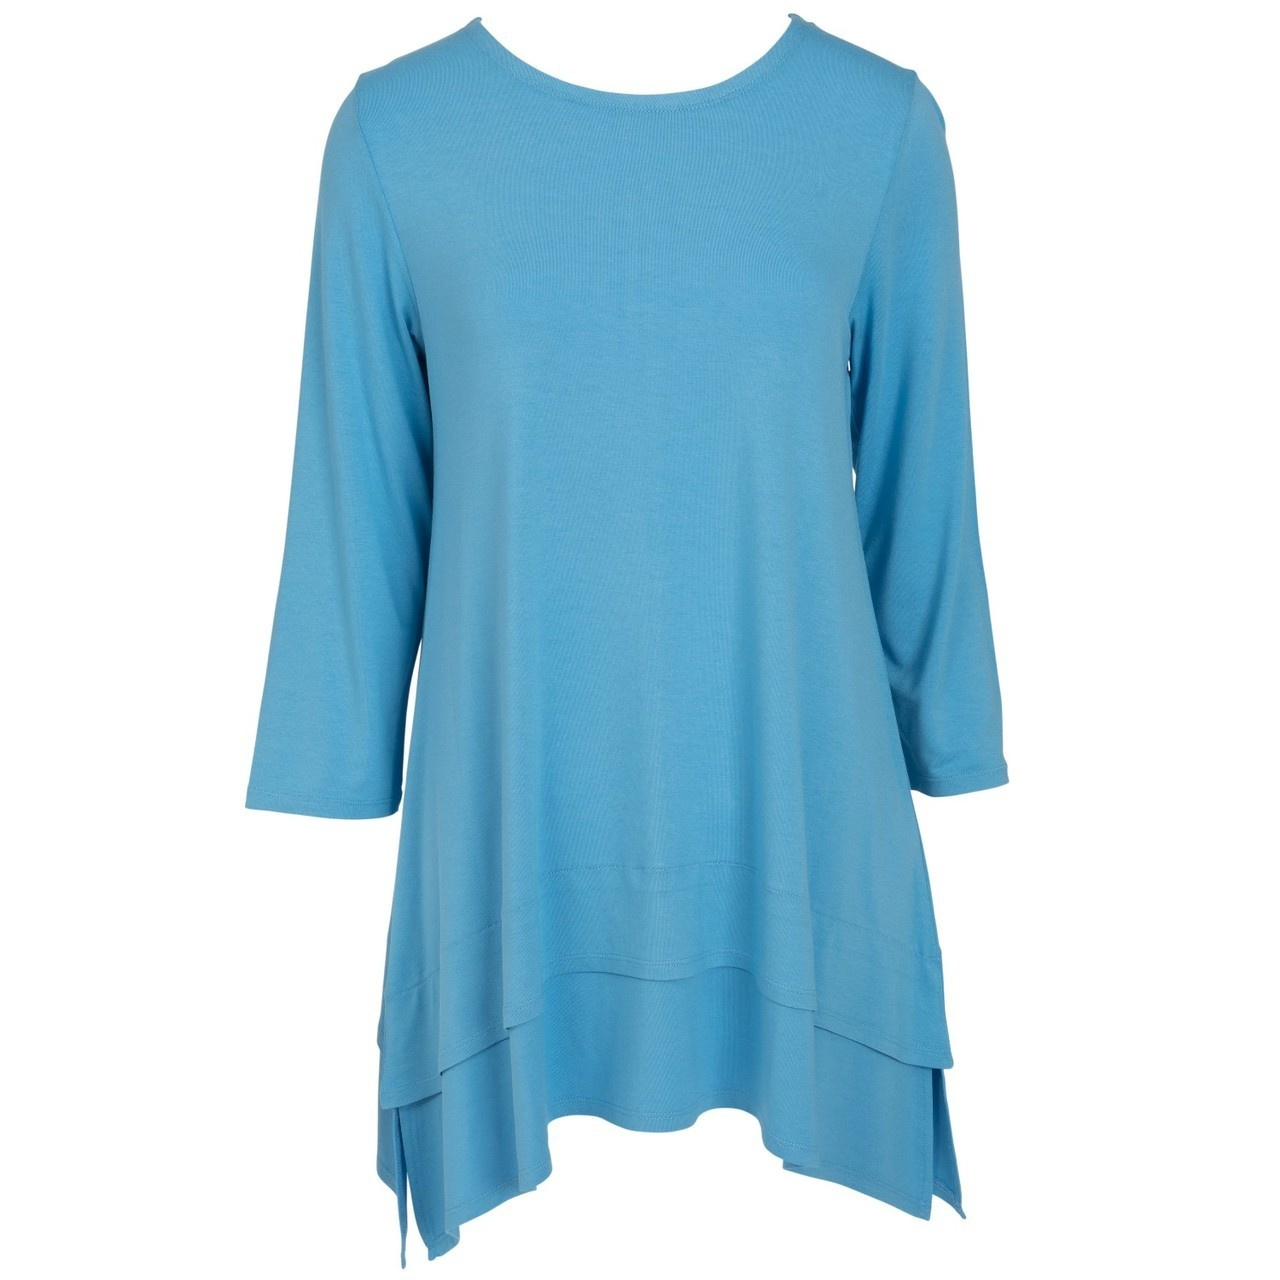 Double Layer Tunic - Azure Blue - SM/MED